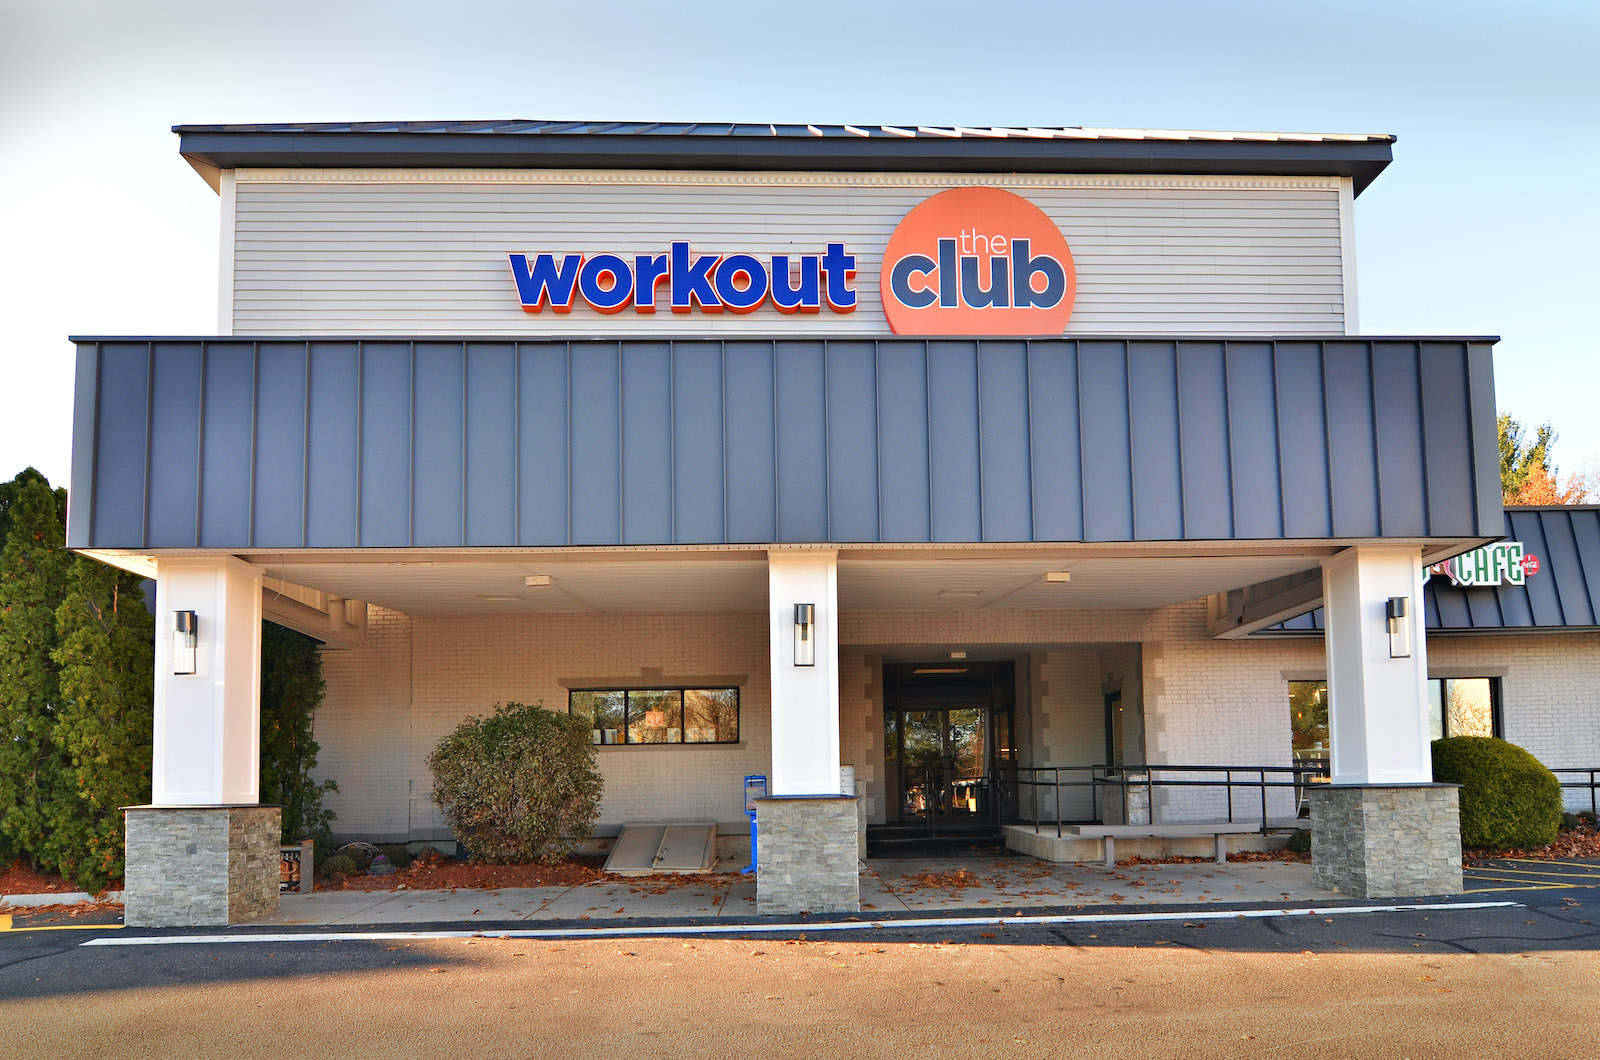 New Hampshire's full service fitness facilities at the Workout Club